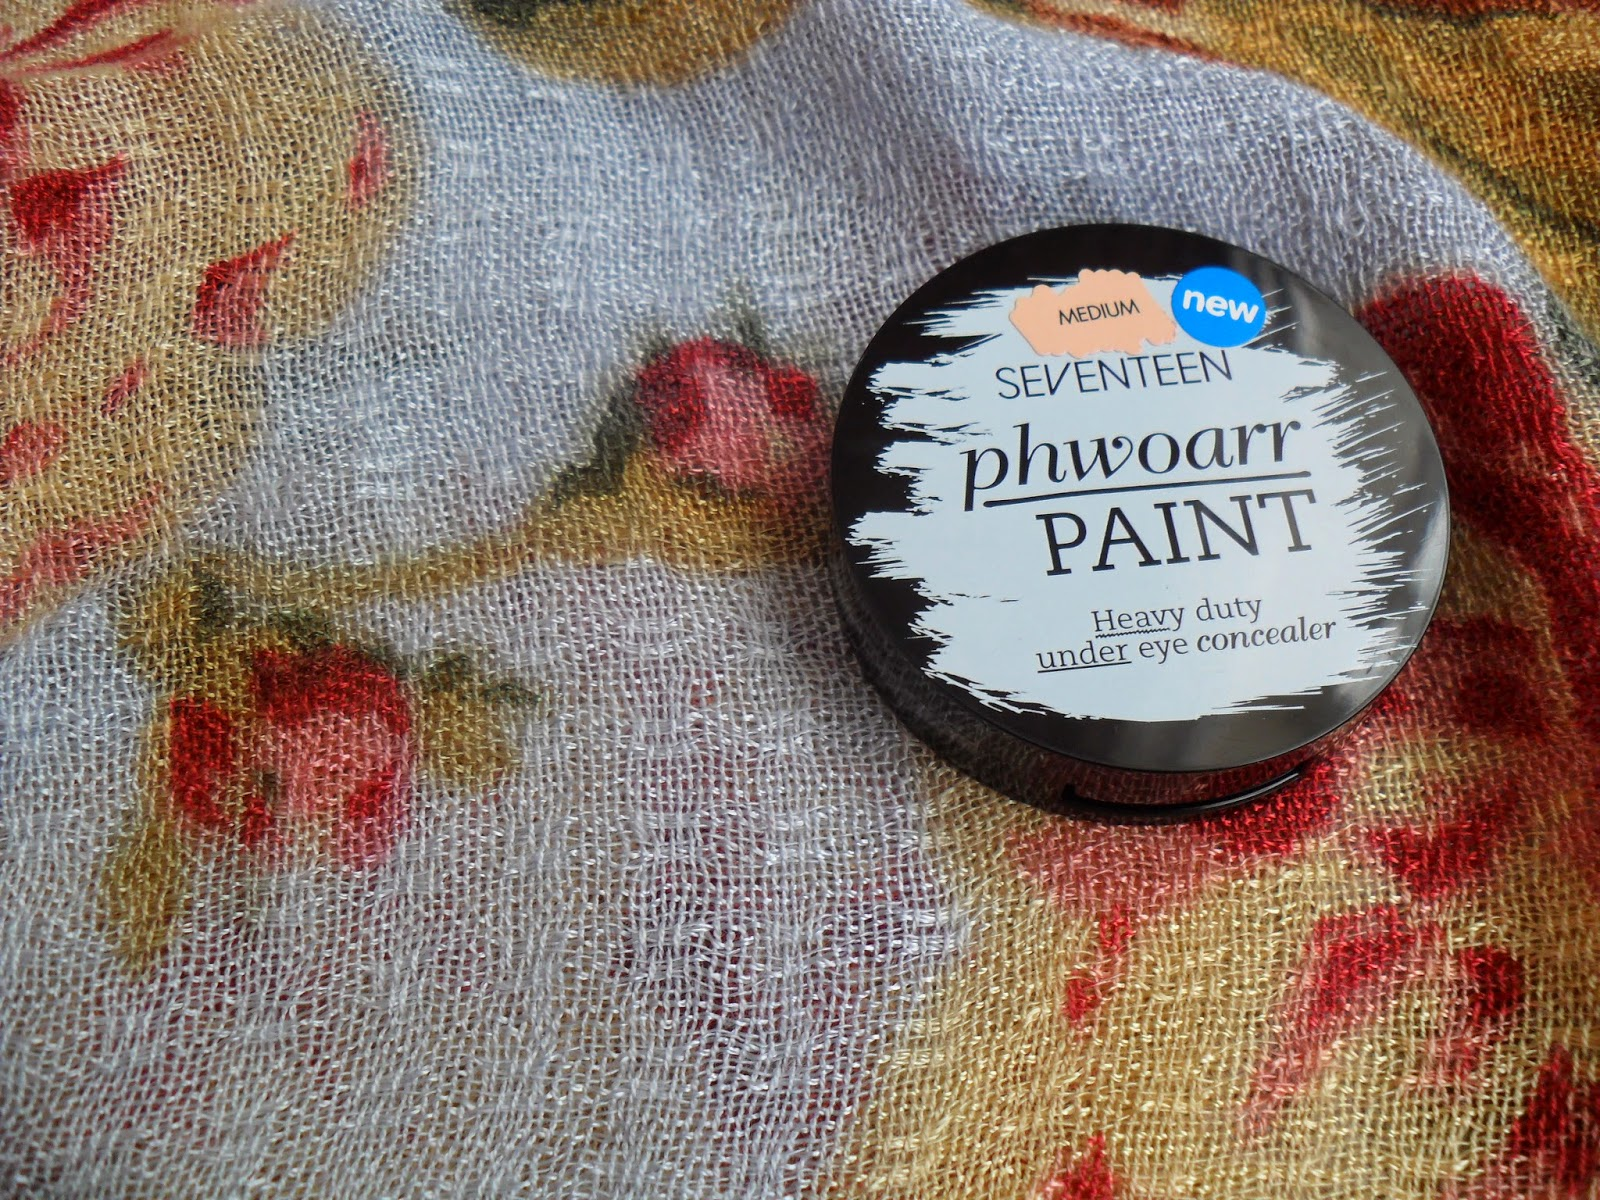 Review of Seventeen Phwoarr Paint Heavy Duty Under Eye Concealer